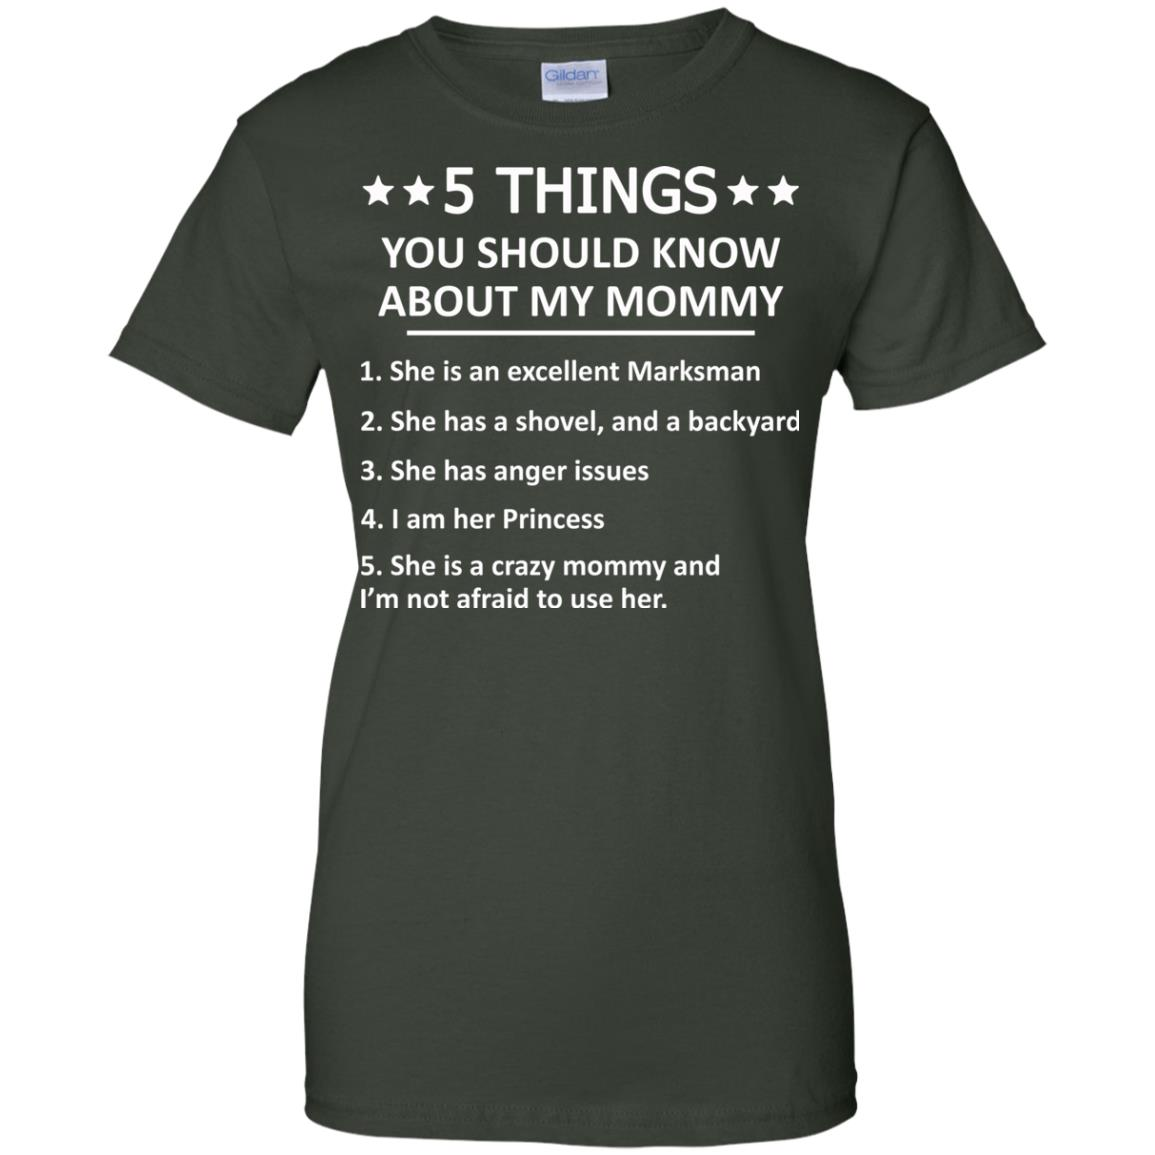 image 1316px 5 Things you should know about my mommy t shirt, hoodies, tank